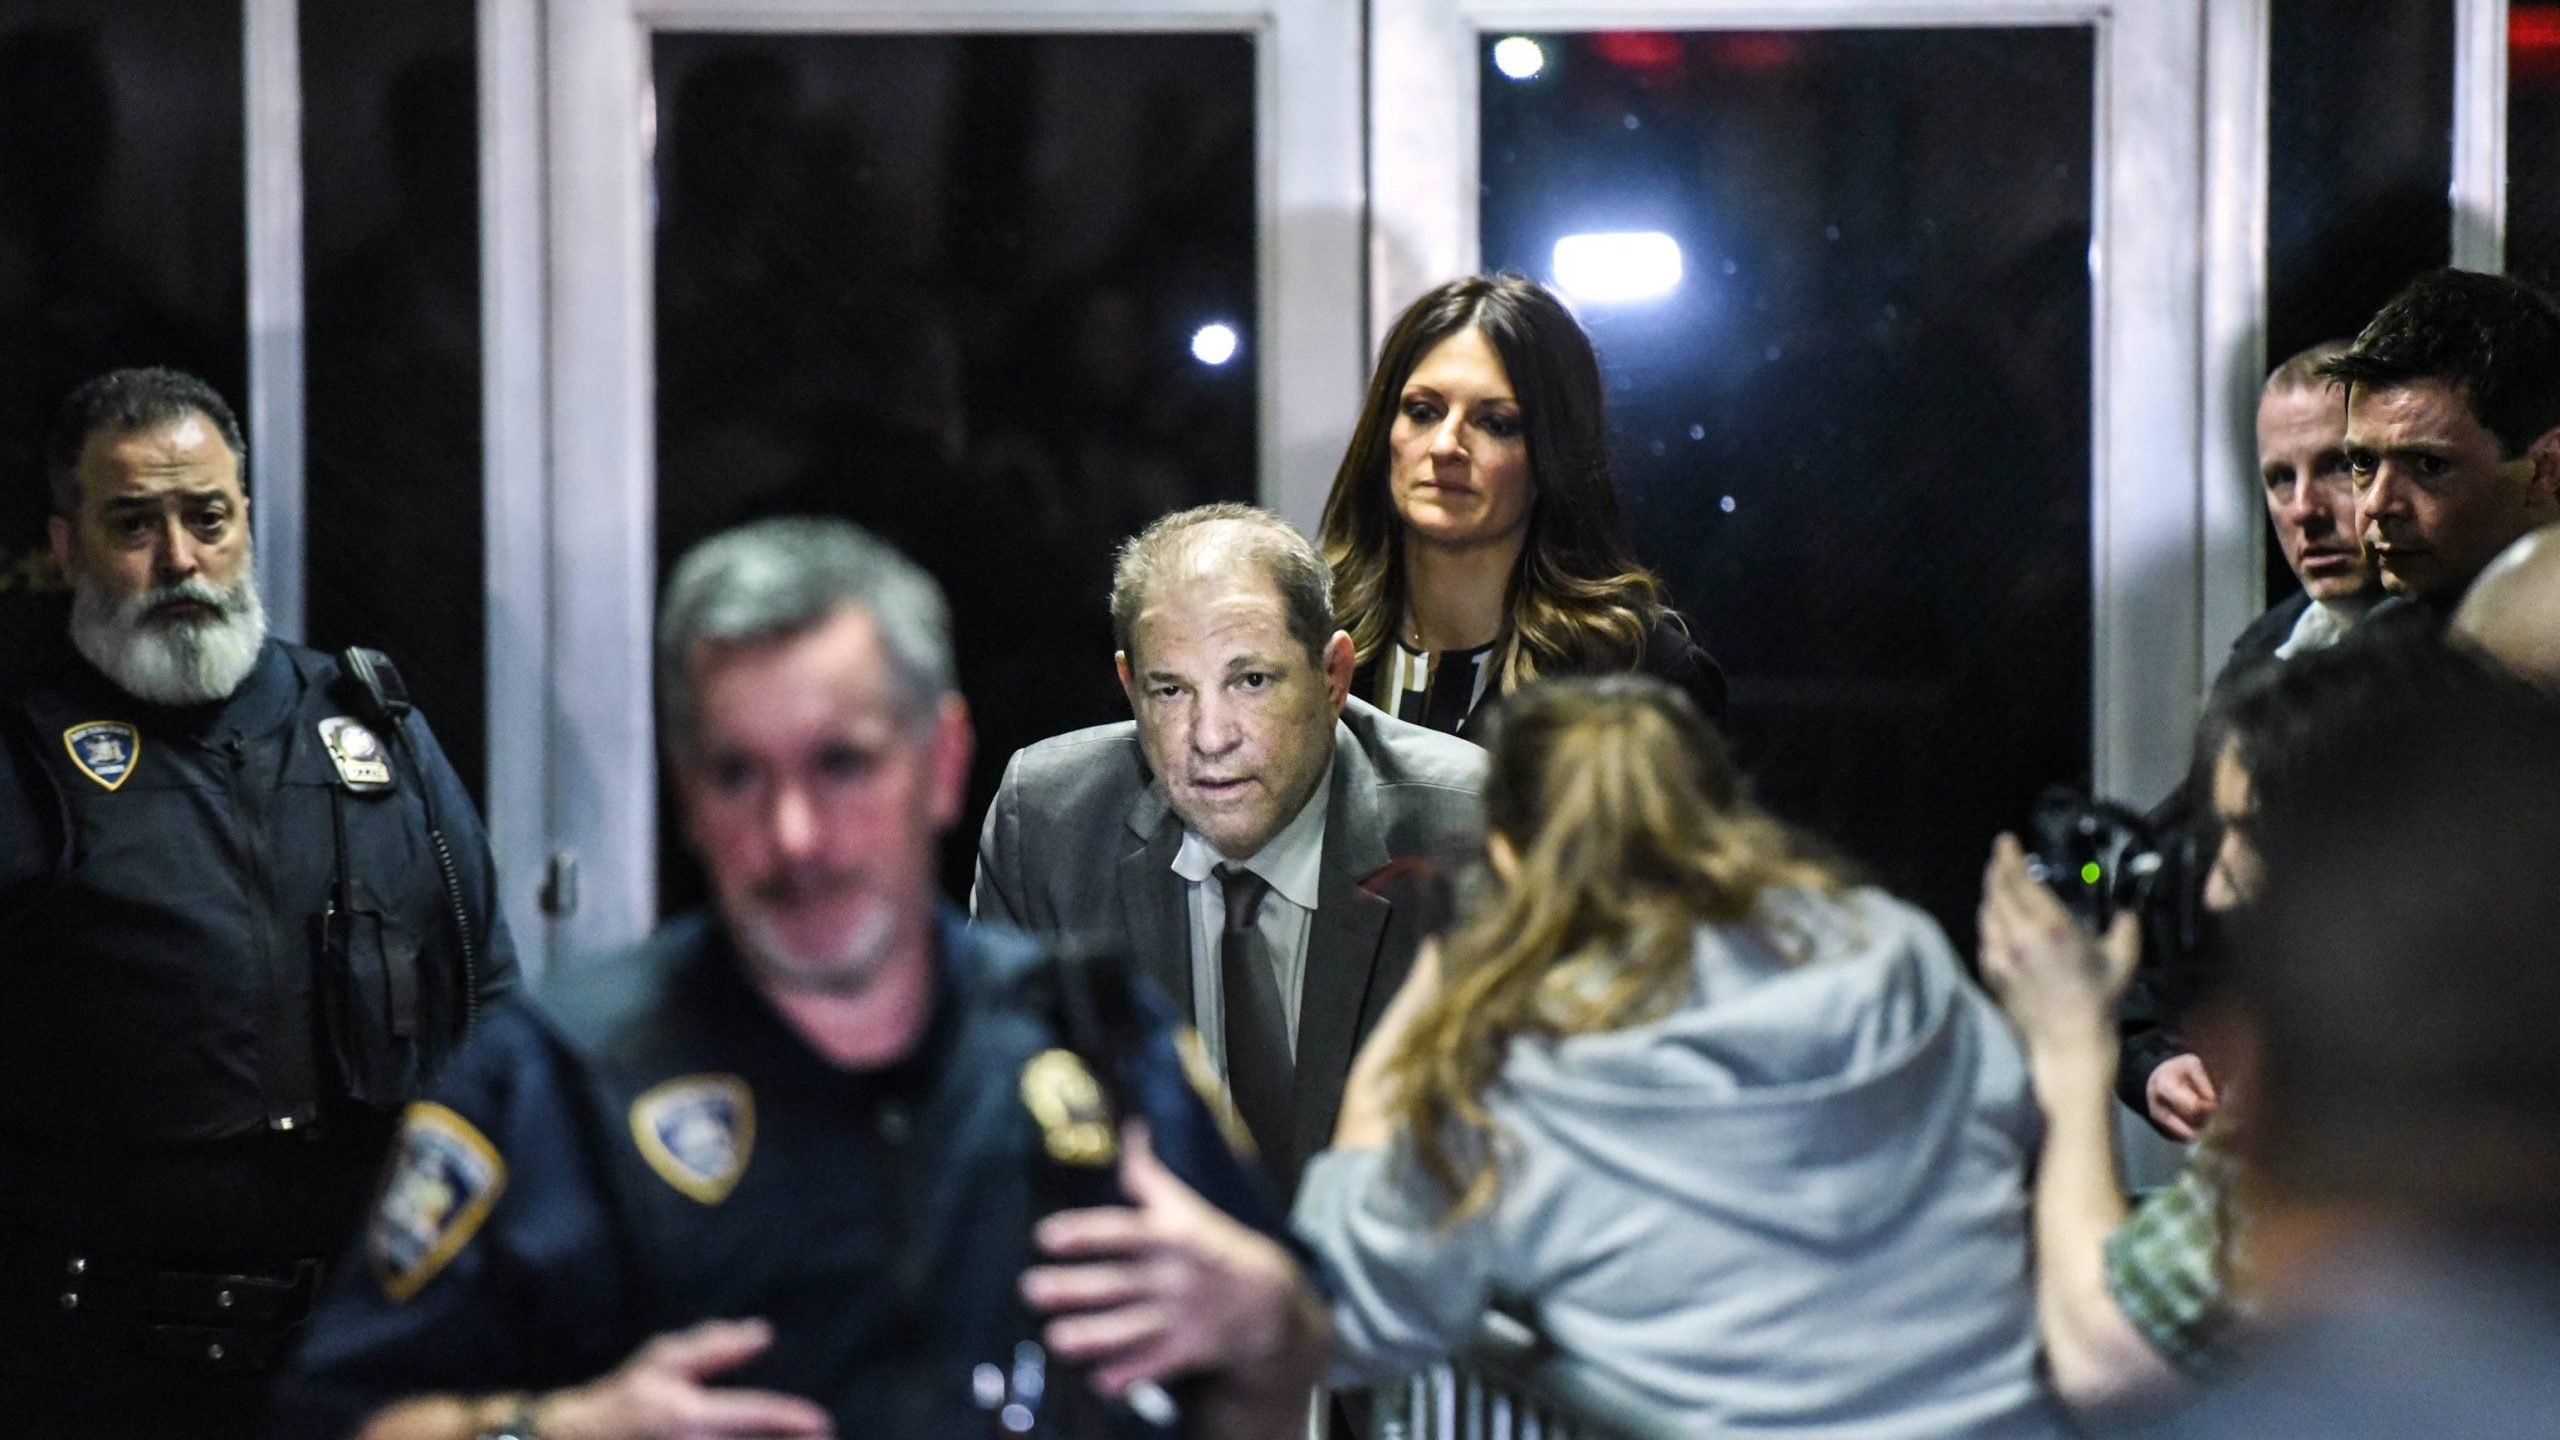 Harvey Weinstein leaves the courtroom at New York City criminal court during his sex crimes trial on Jan. 7, 2020, in New York City. (Credit: Stephanie Keith/Getty Images)